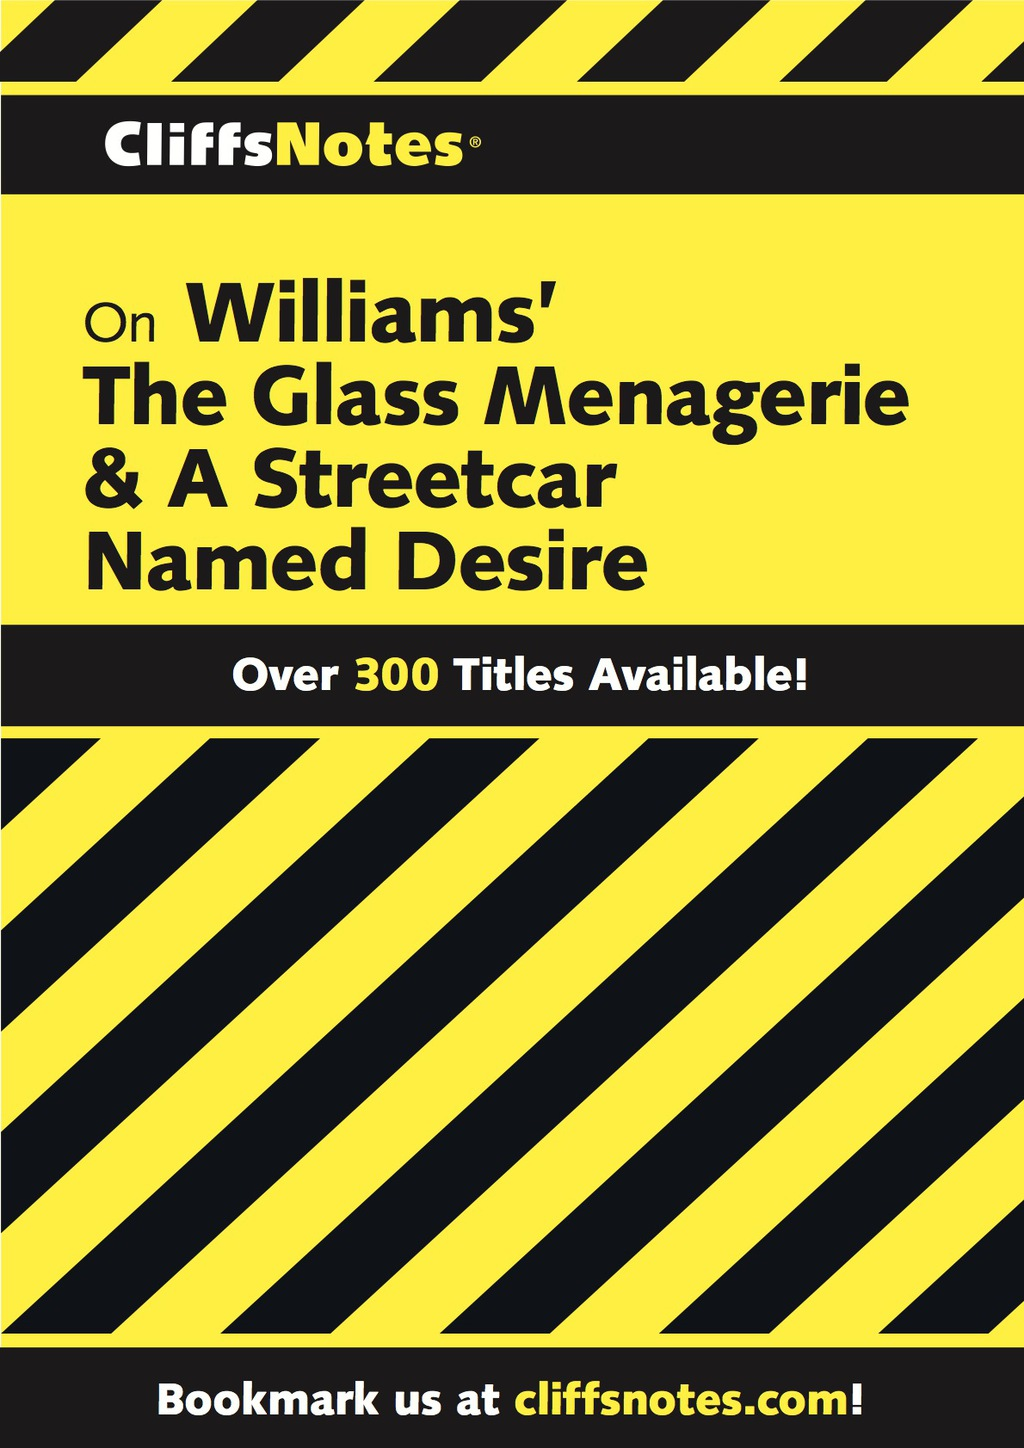 CliffsNotes on Williams' The Glass Menagerie & A Streetcar Named Desire (ebook) eBooks